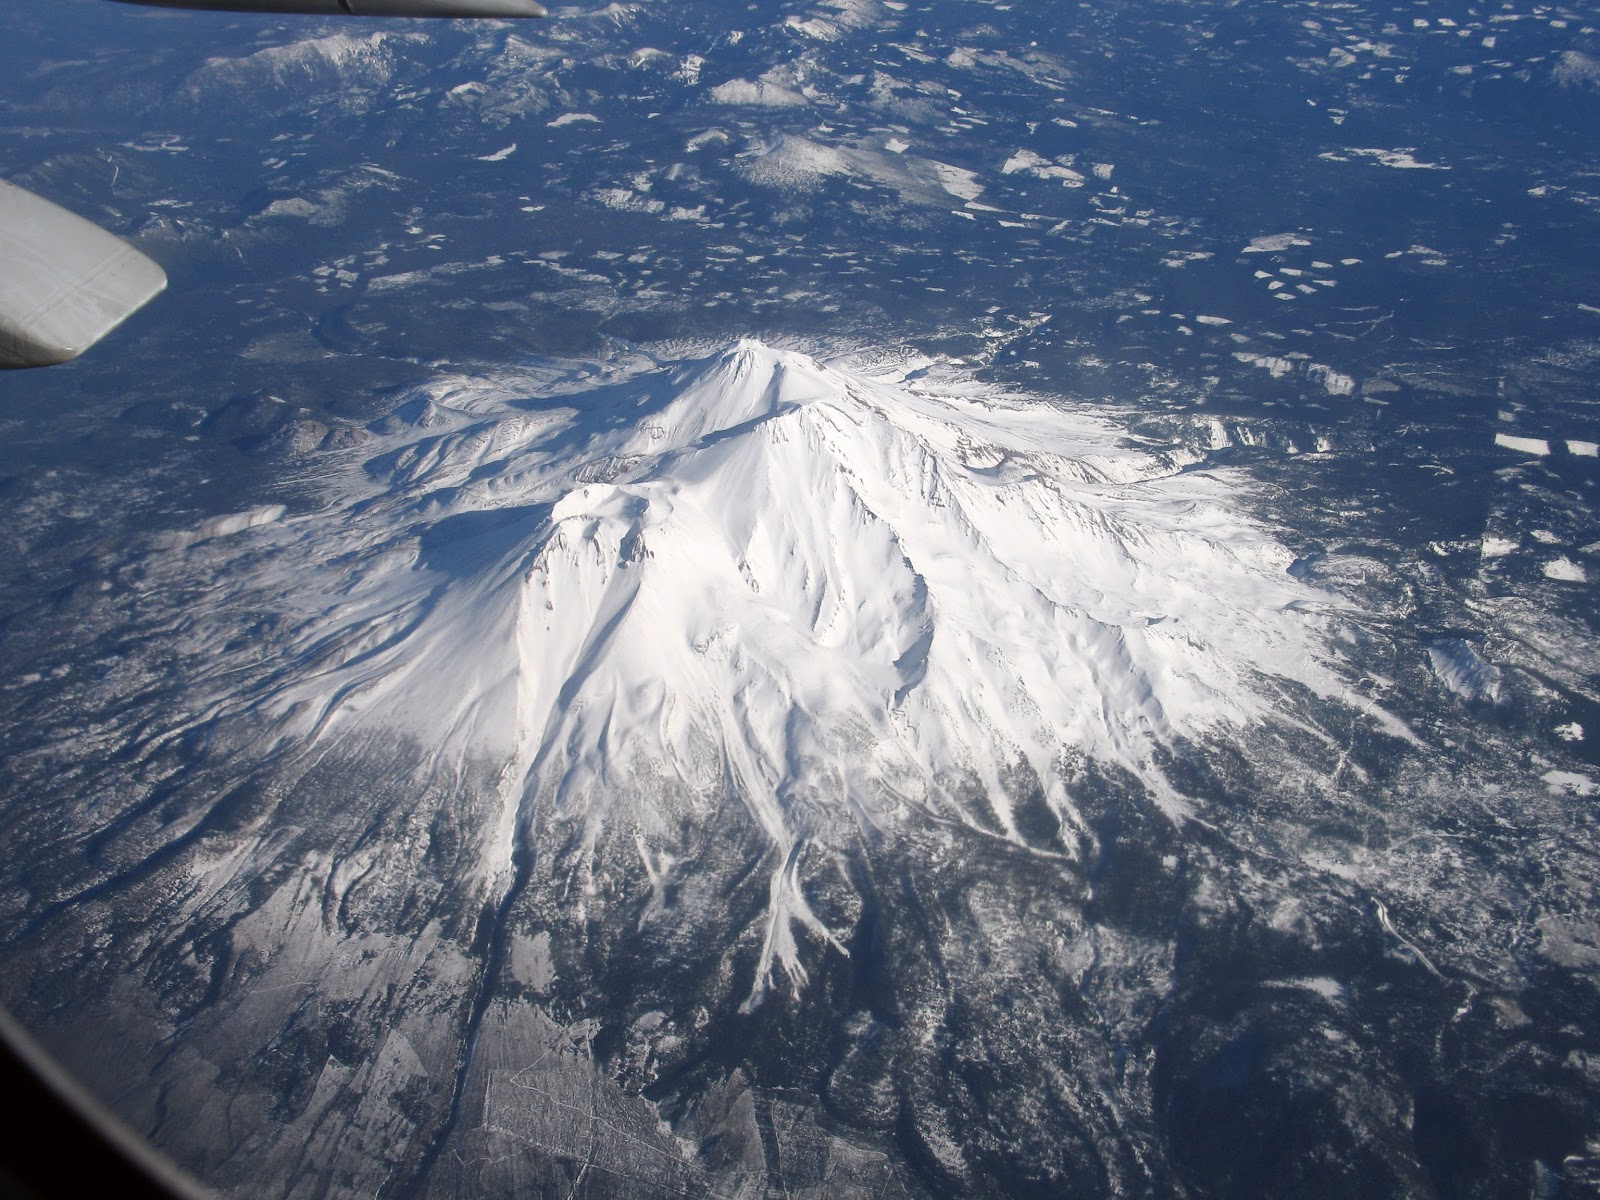 Mount Shasta California Mount Shasta ca Picture Mount